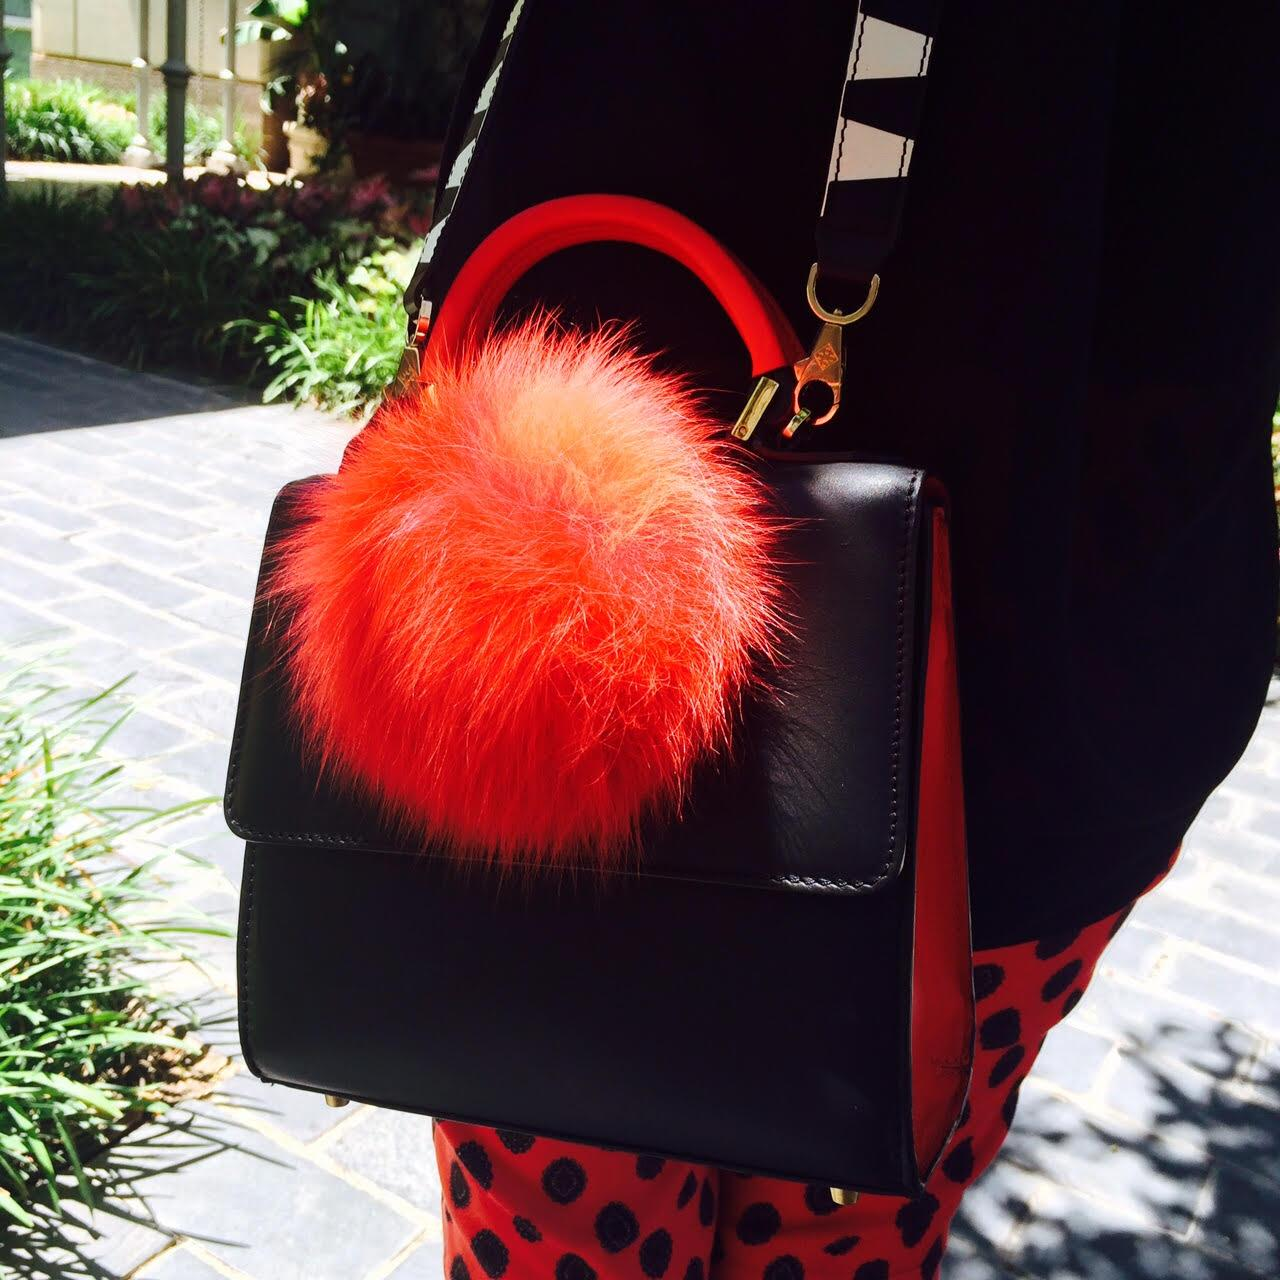 Because red is our color of choice this fall. Crushing on this @LPJparis pom pom handbag: http://t.co/qoARDFtXMx http://t.co/mxnKV1XRYE